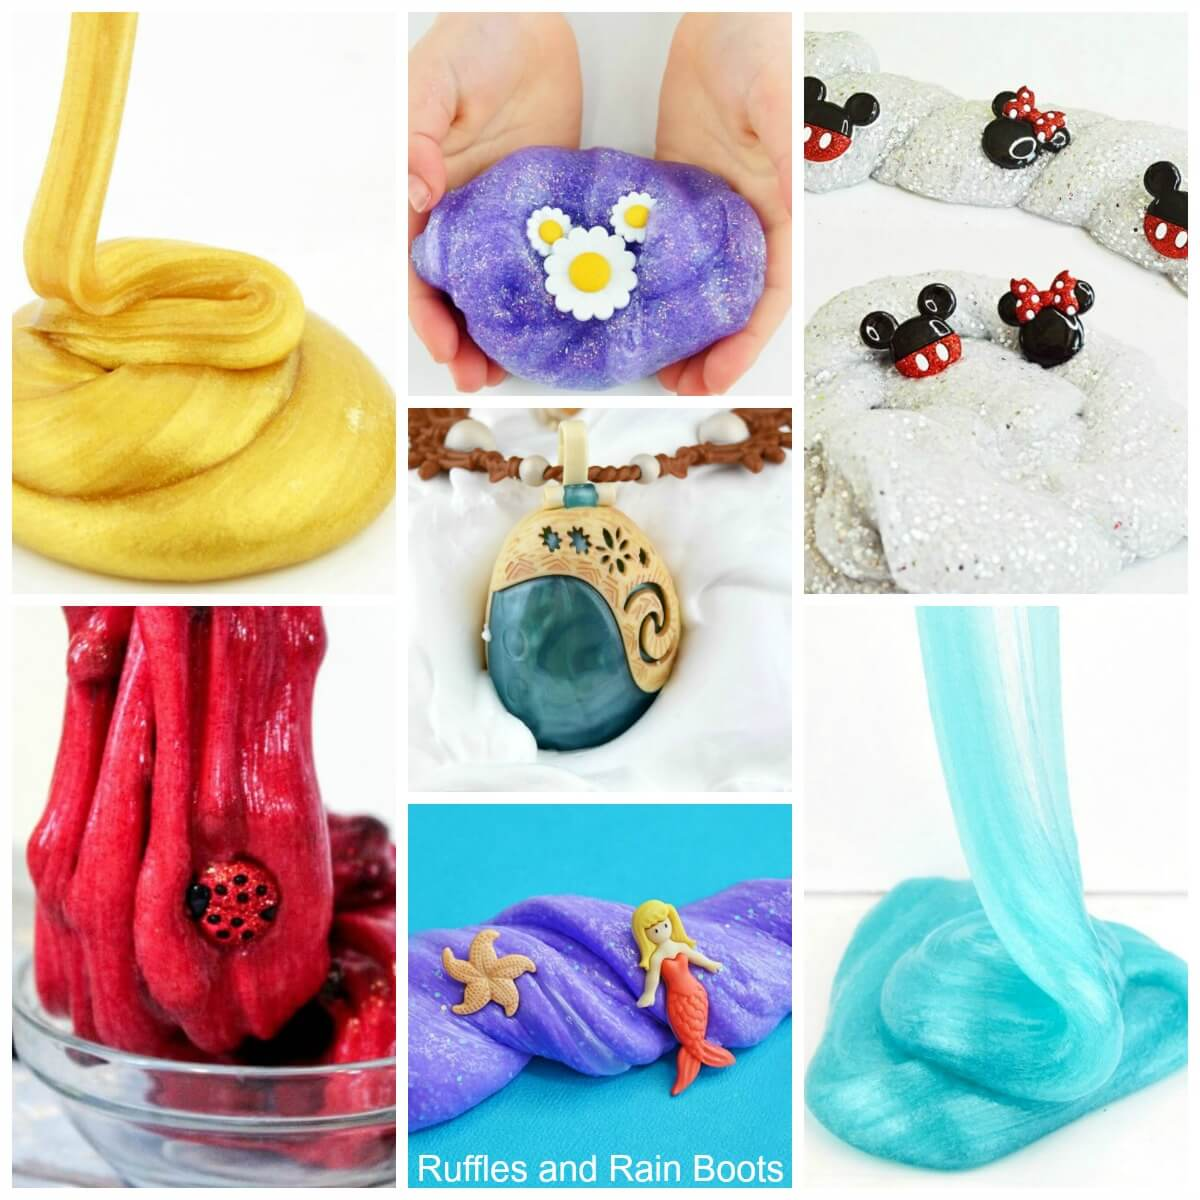 Amazing slime recipes to entertain with glitter slime, butter slime, fluffy slime, borax-free slime and so much more. Ideas for young kids and older ones (even adults)! #slime #slimerecipes #diyslime #glitterslime #butterslime #clayslime #howtomakeslime #howtocolorslime #easyslime #easyslimerecipes #boraxfreeslime #contactsolutionslime #rufflesandrainboots